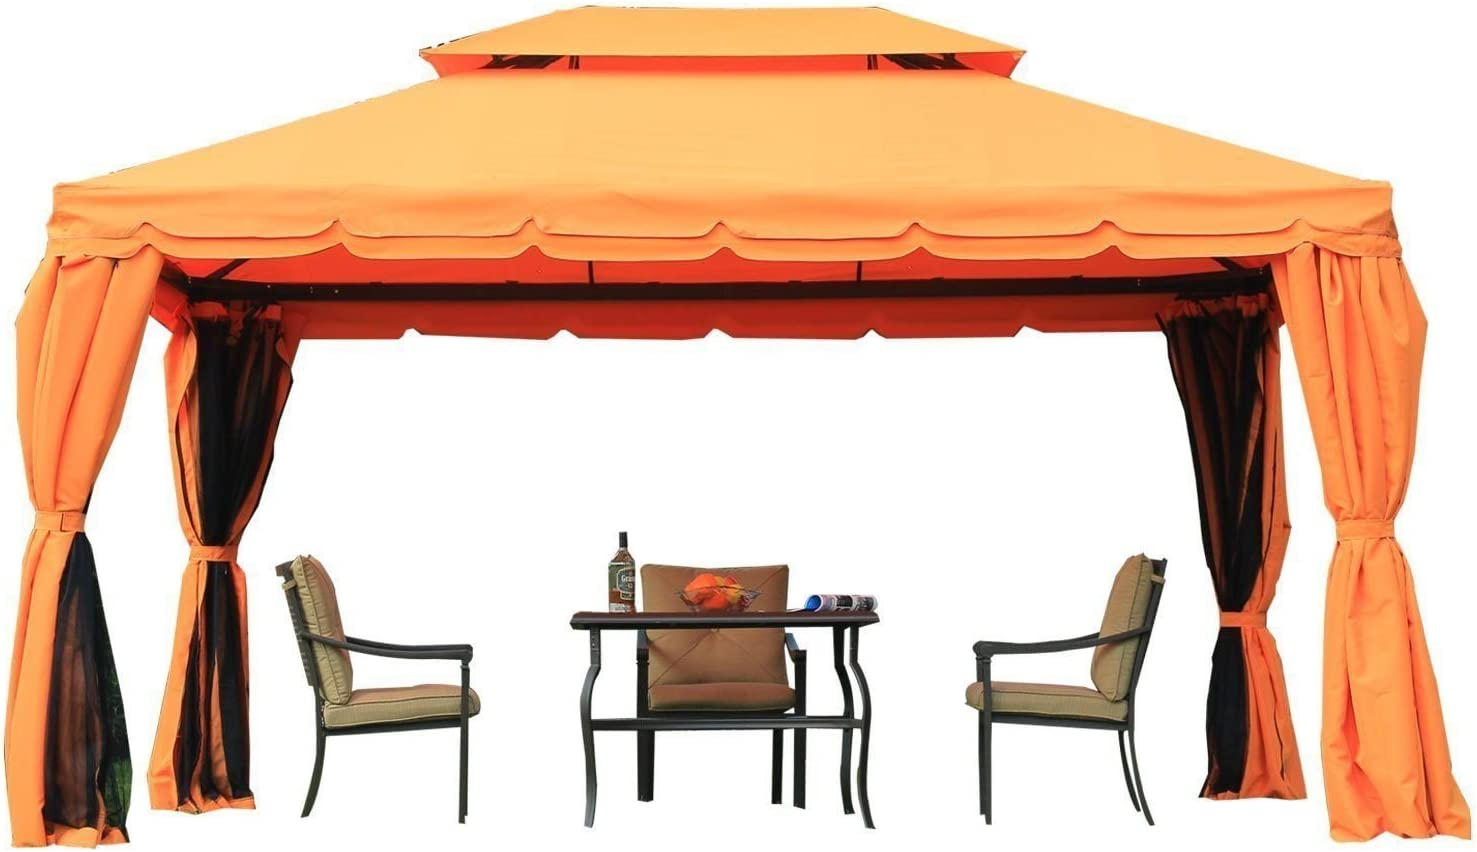 Outsunny - Carpa jardín, Color Naranja, 2, 9 x 3, 9 m: Amazon.es ...